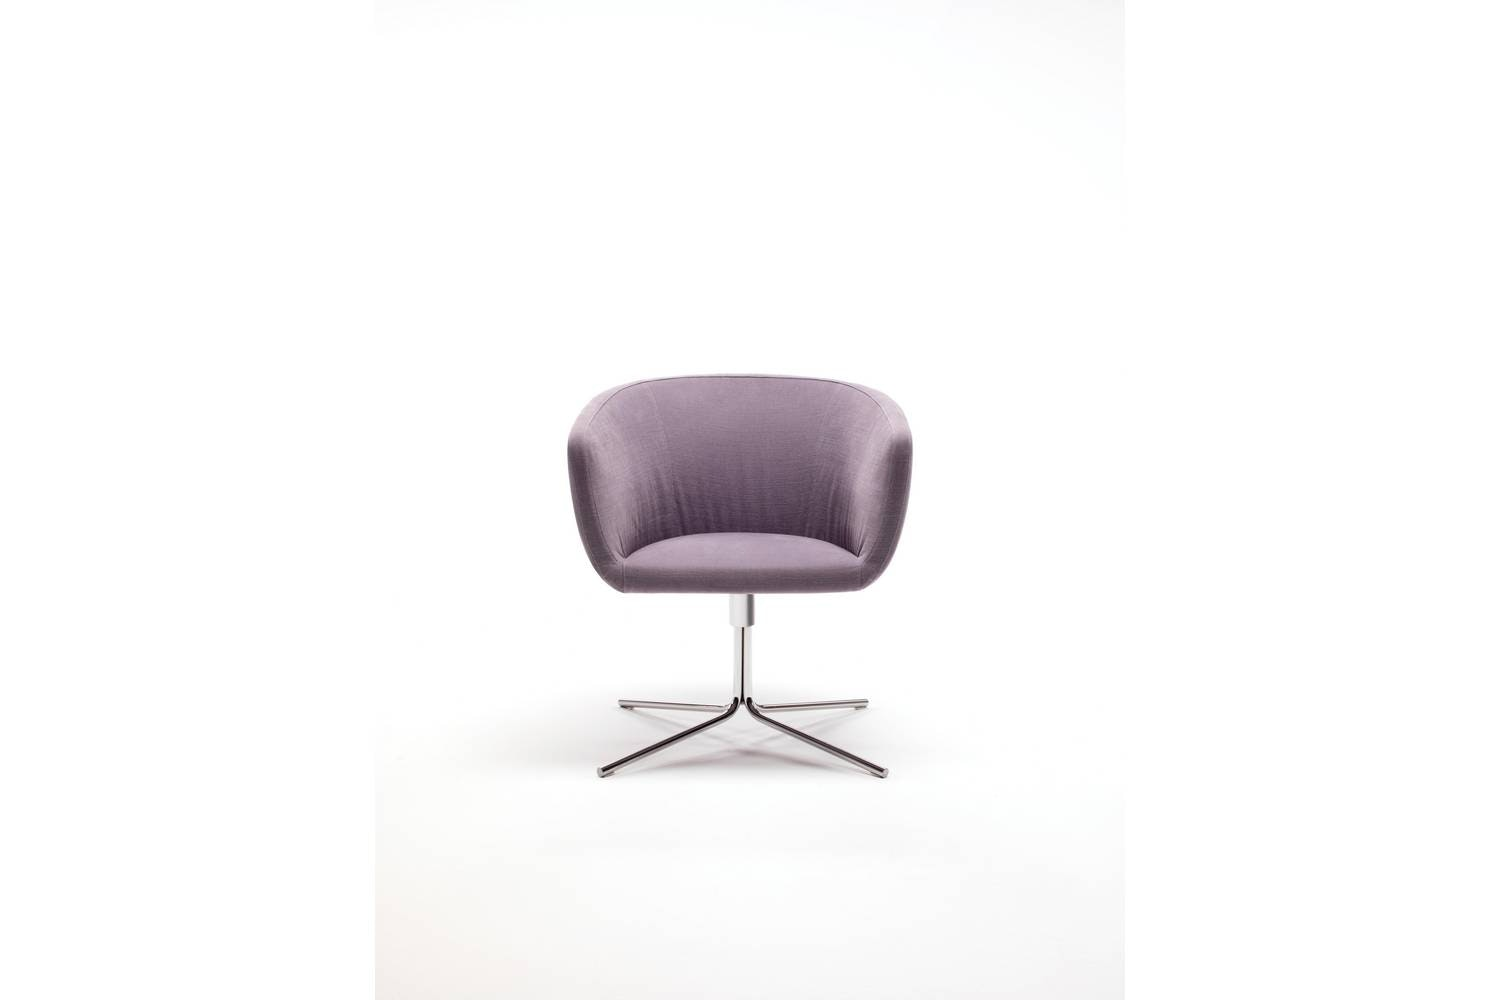 Mini Jelly Armchair by Piero Lissoni for Living Divani